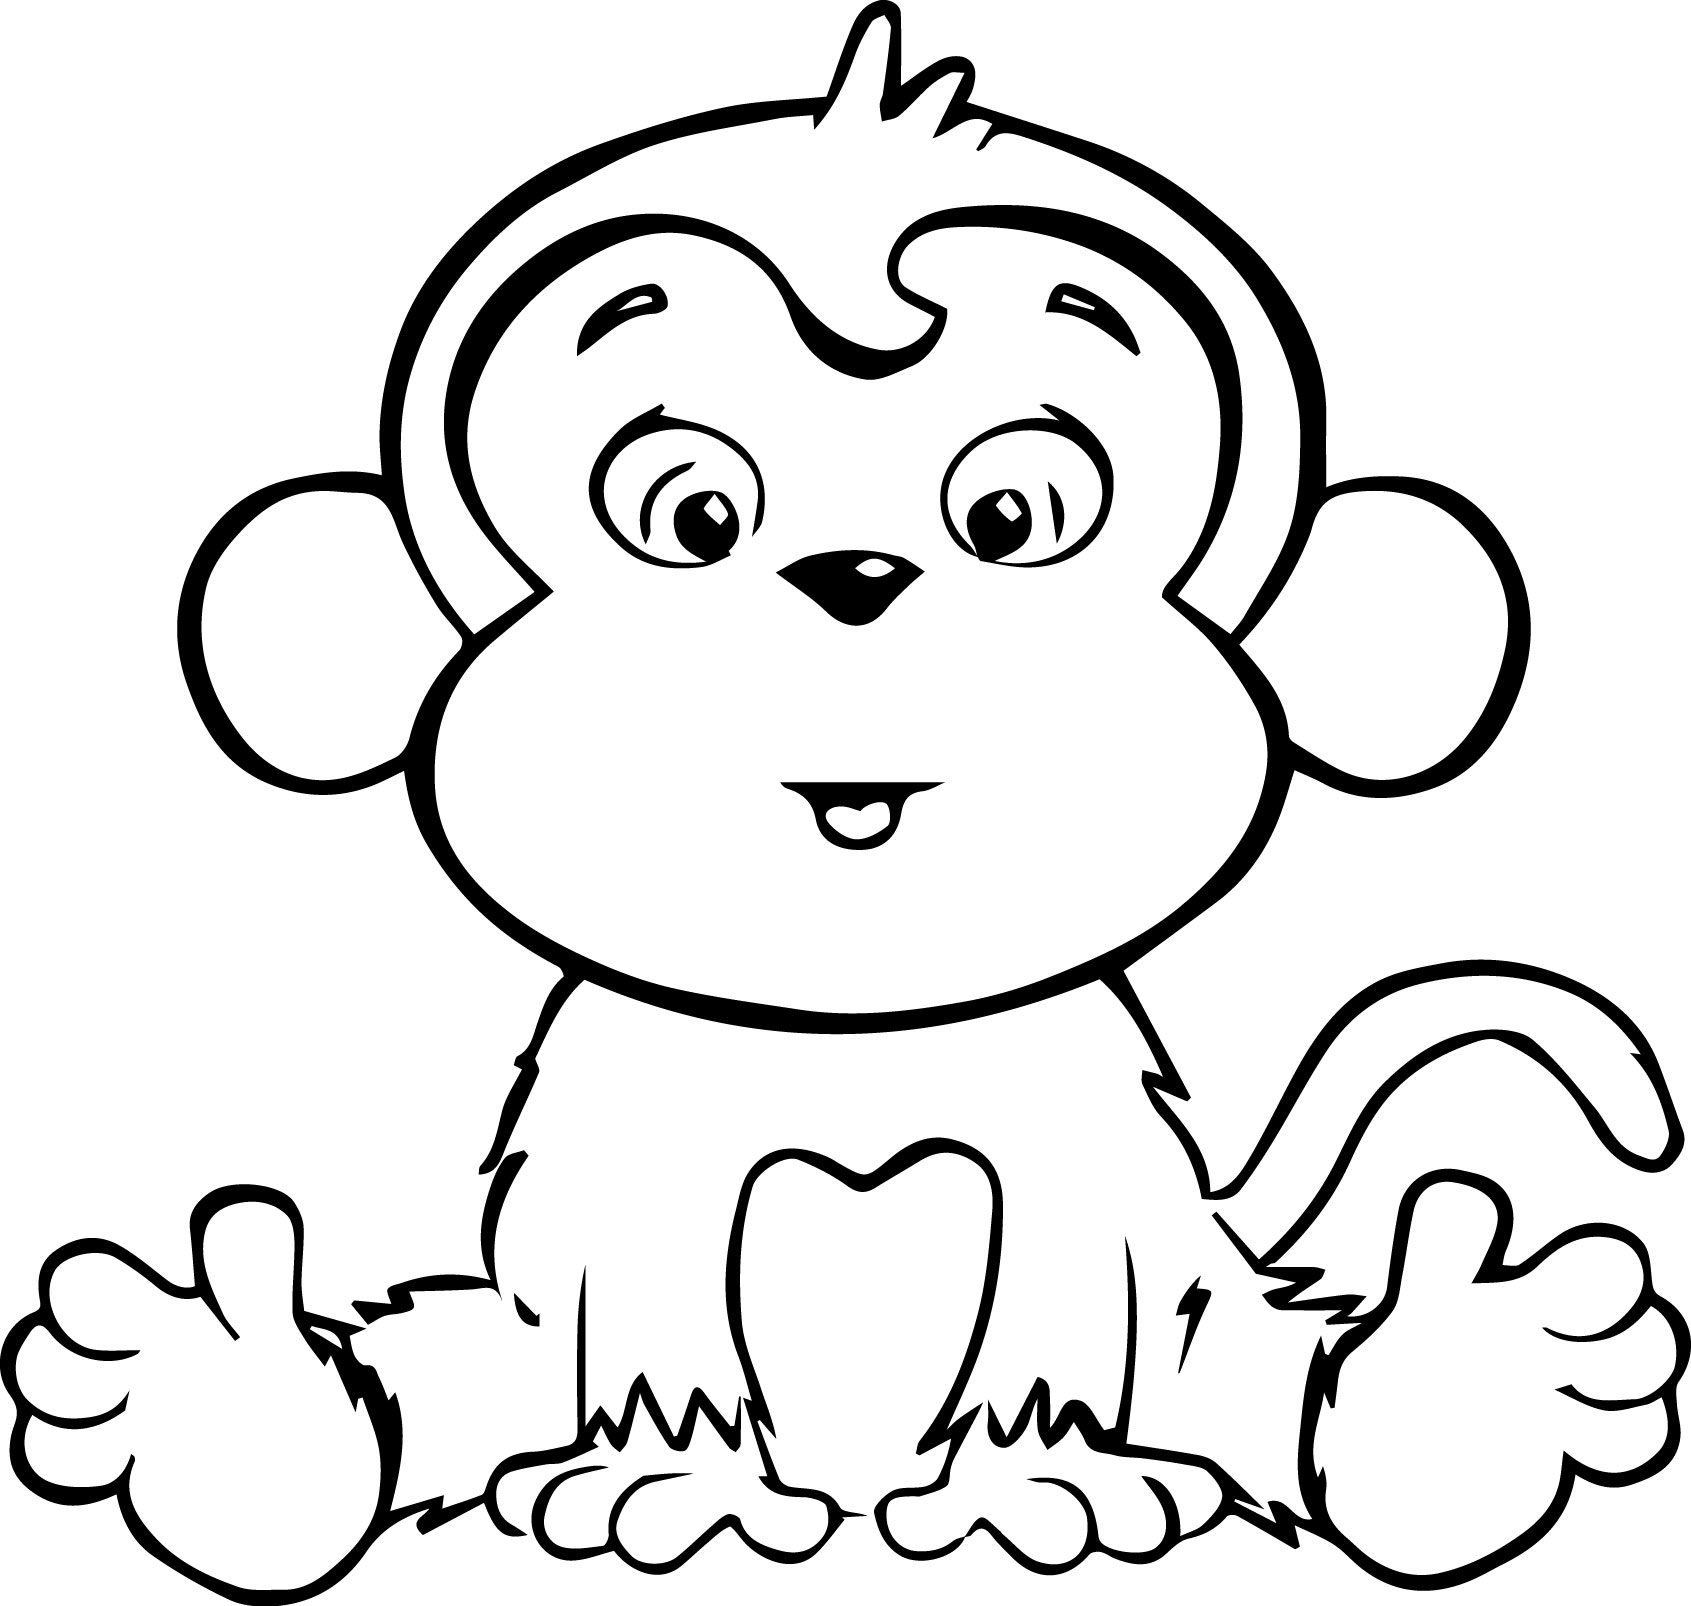 Monkey Printable Coloring Pages At Getdrawings Com Free For